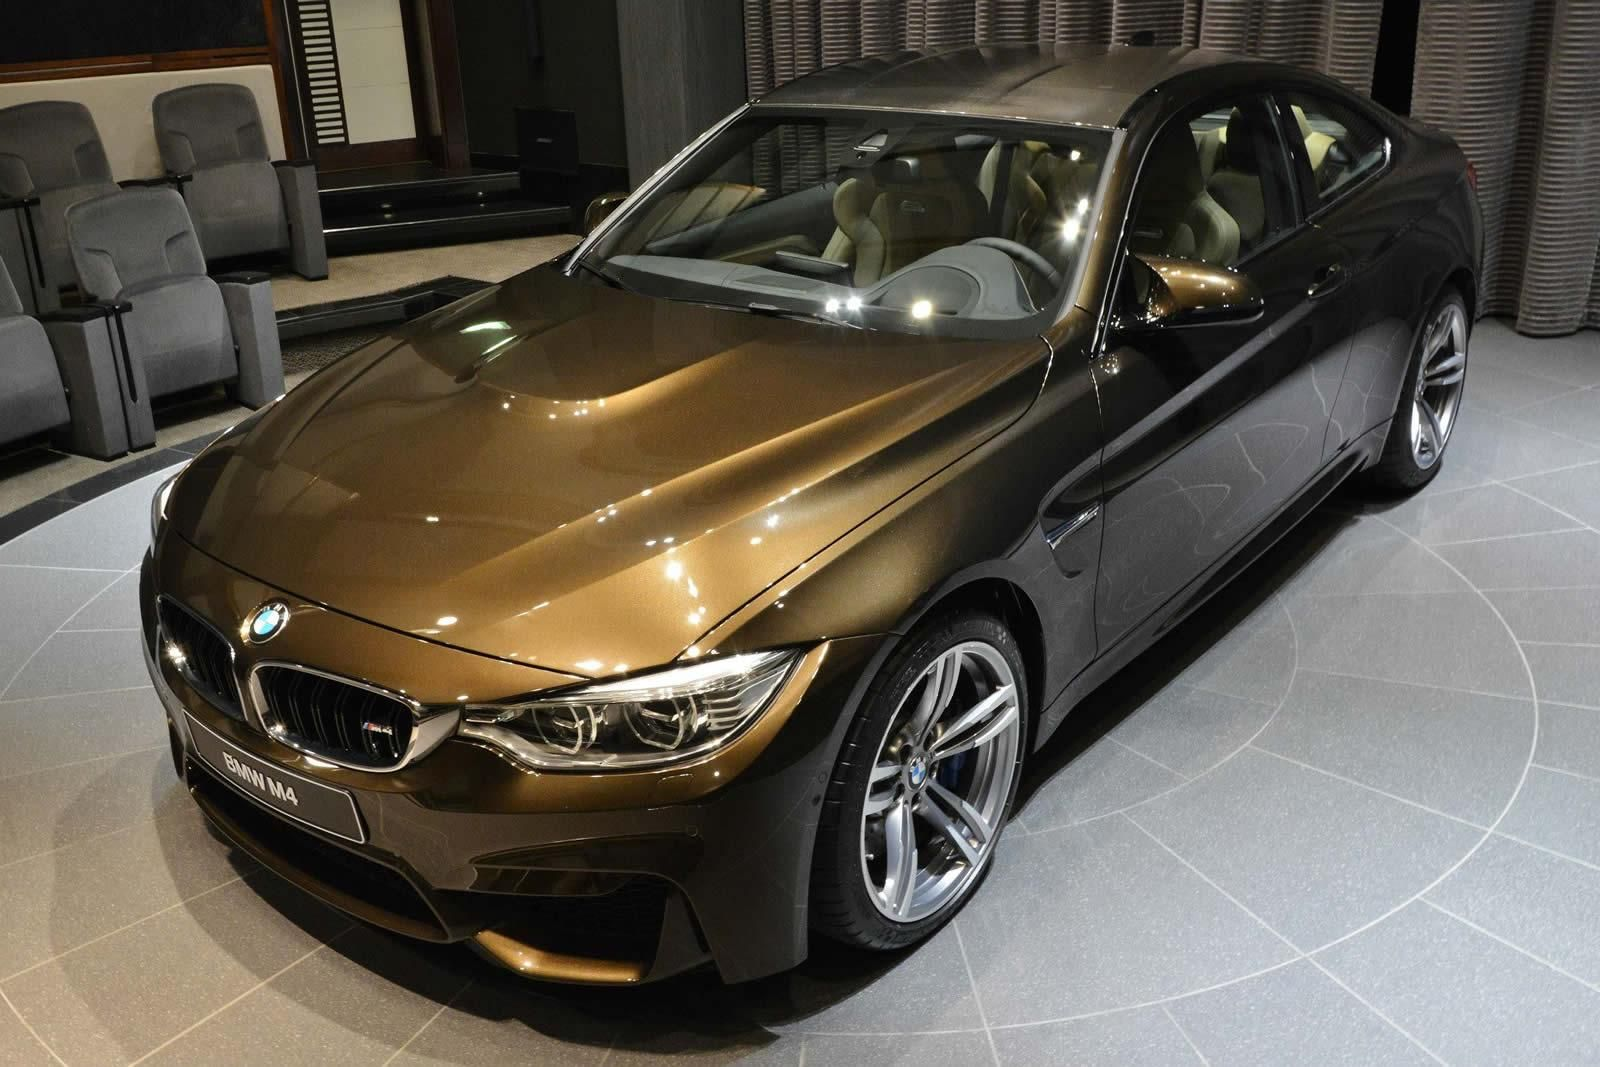 Find this pin and more on bmw 4 series coupe in pyrite brown and sonoma beige individual